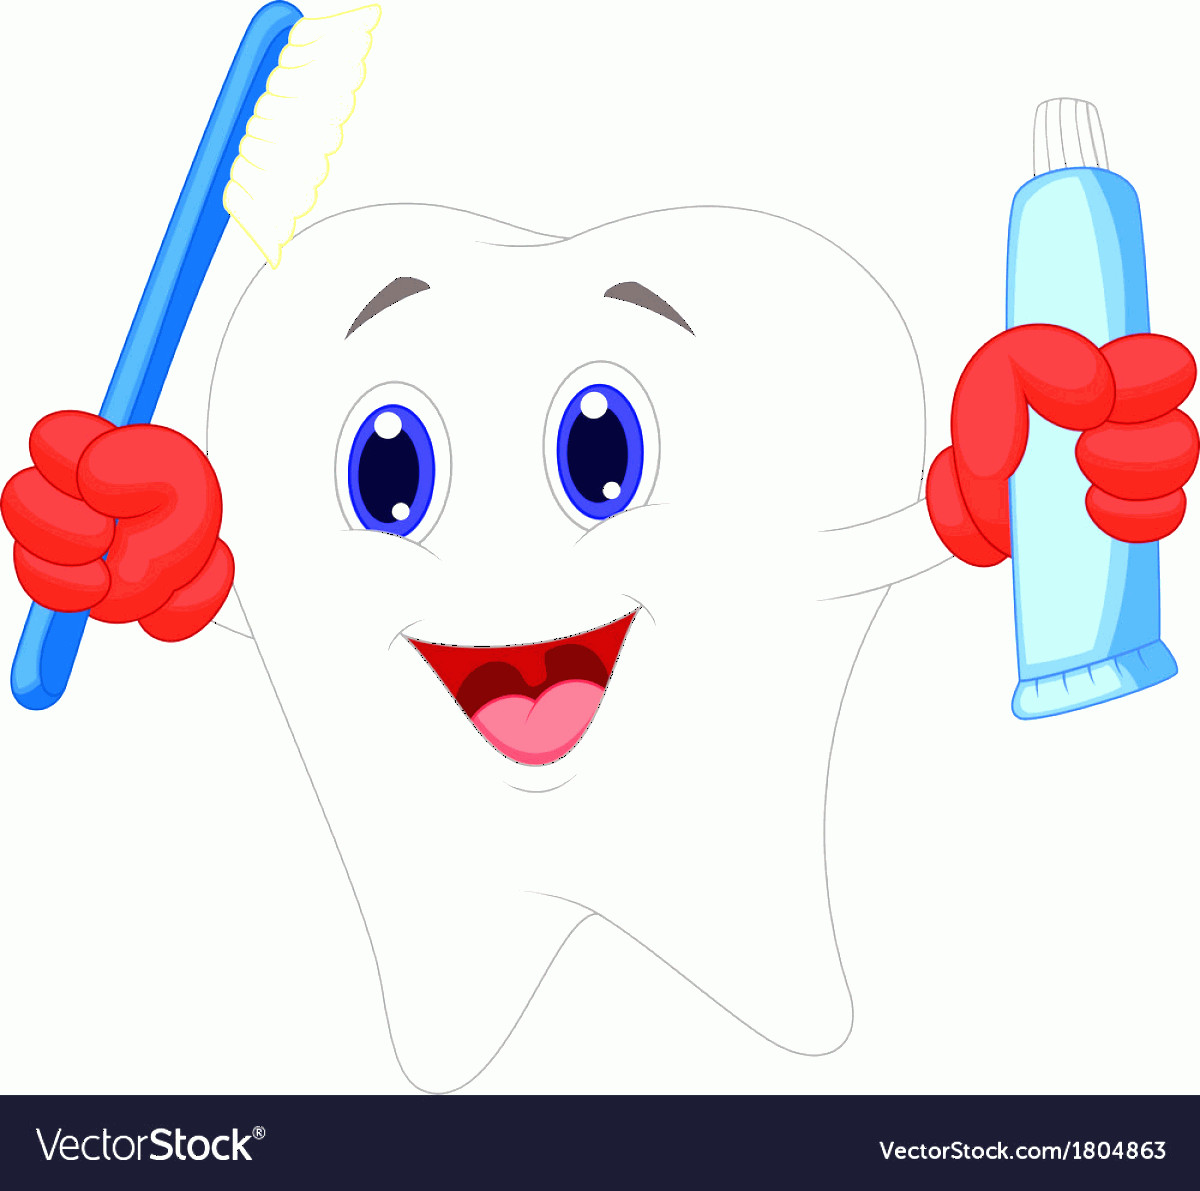 Toothpaste Cartoon Vector: Tooth Cartoon Holding Toothbrush And Toothpaste Vector